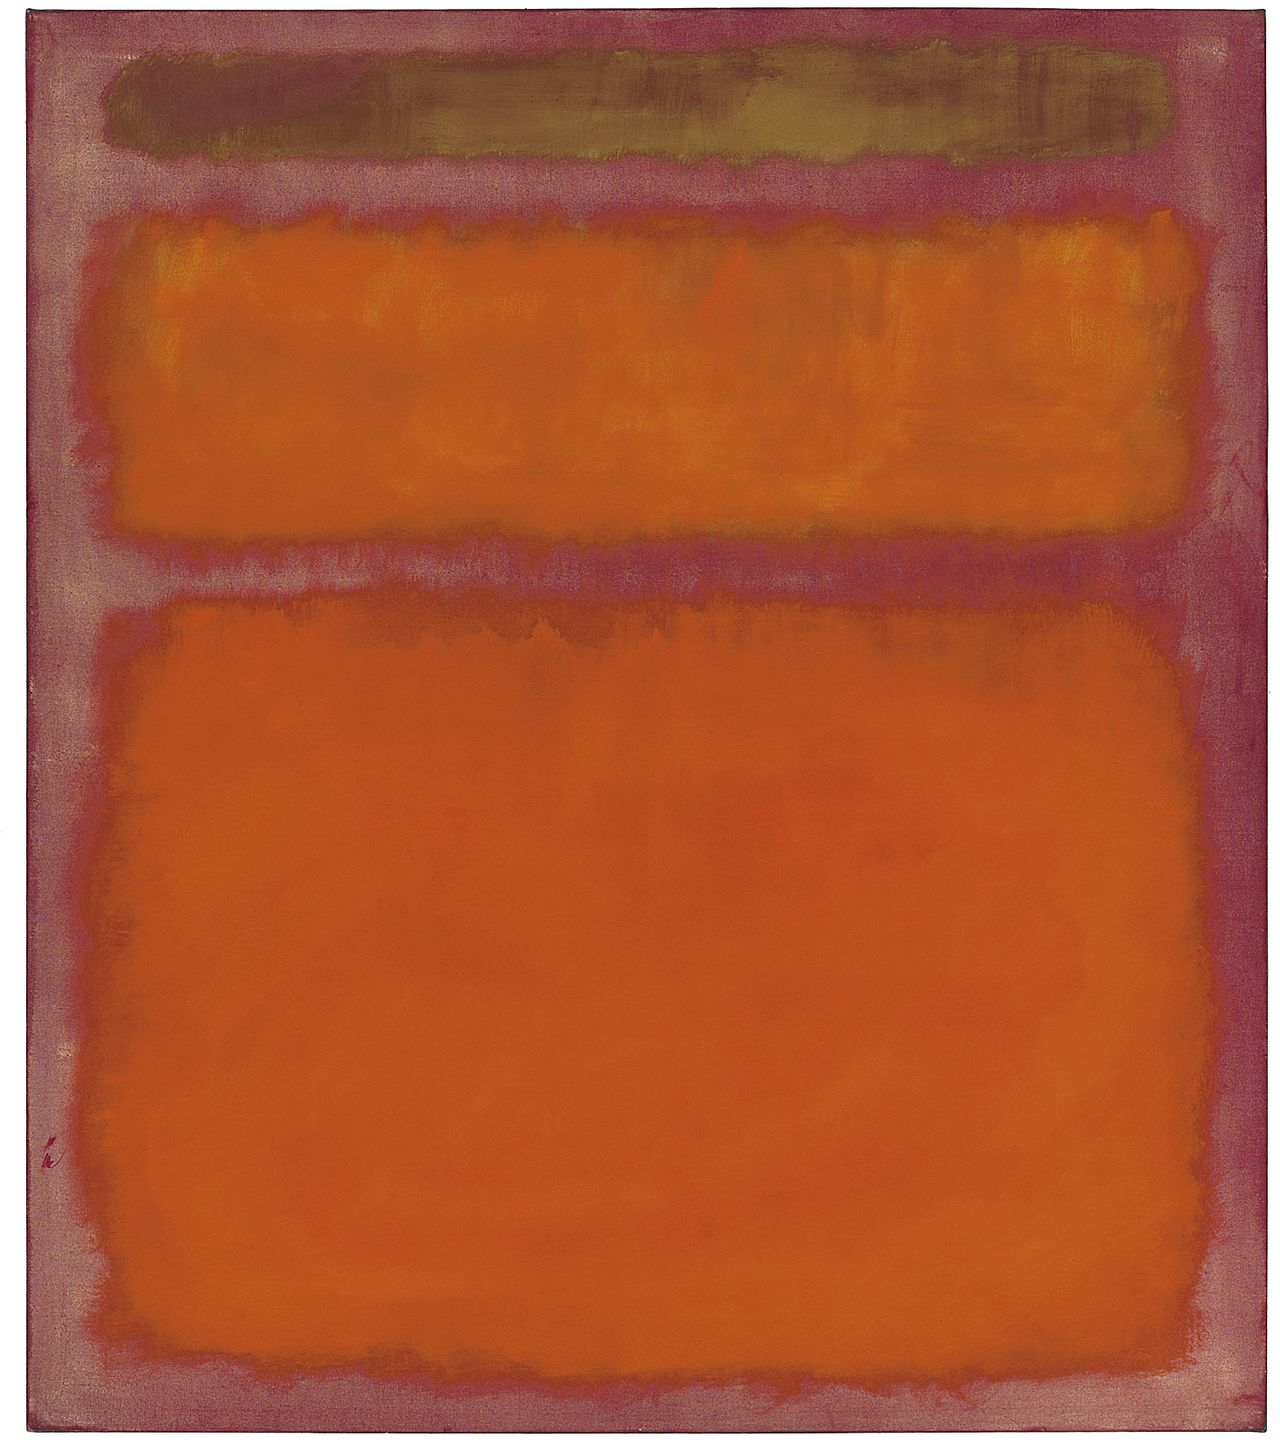 Mark Rothko's wereldberoemde olieverfschilderij Orange, Red, Yellow uit 1961.